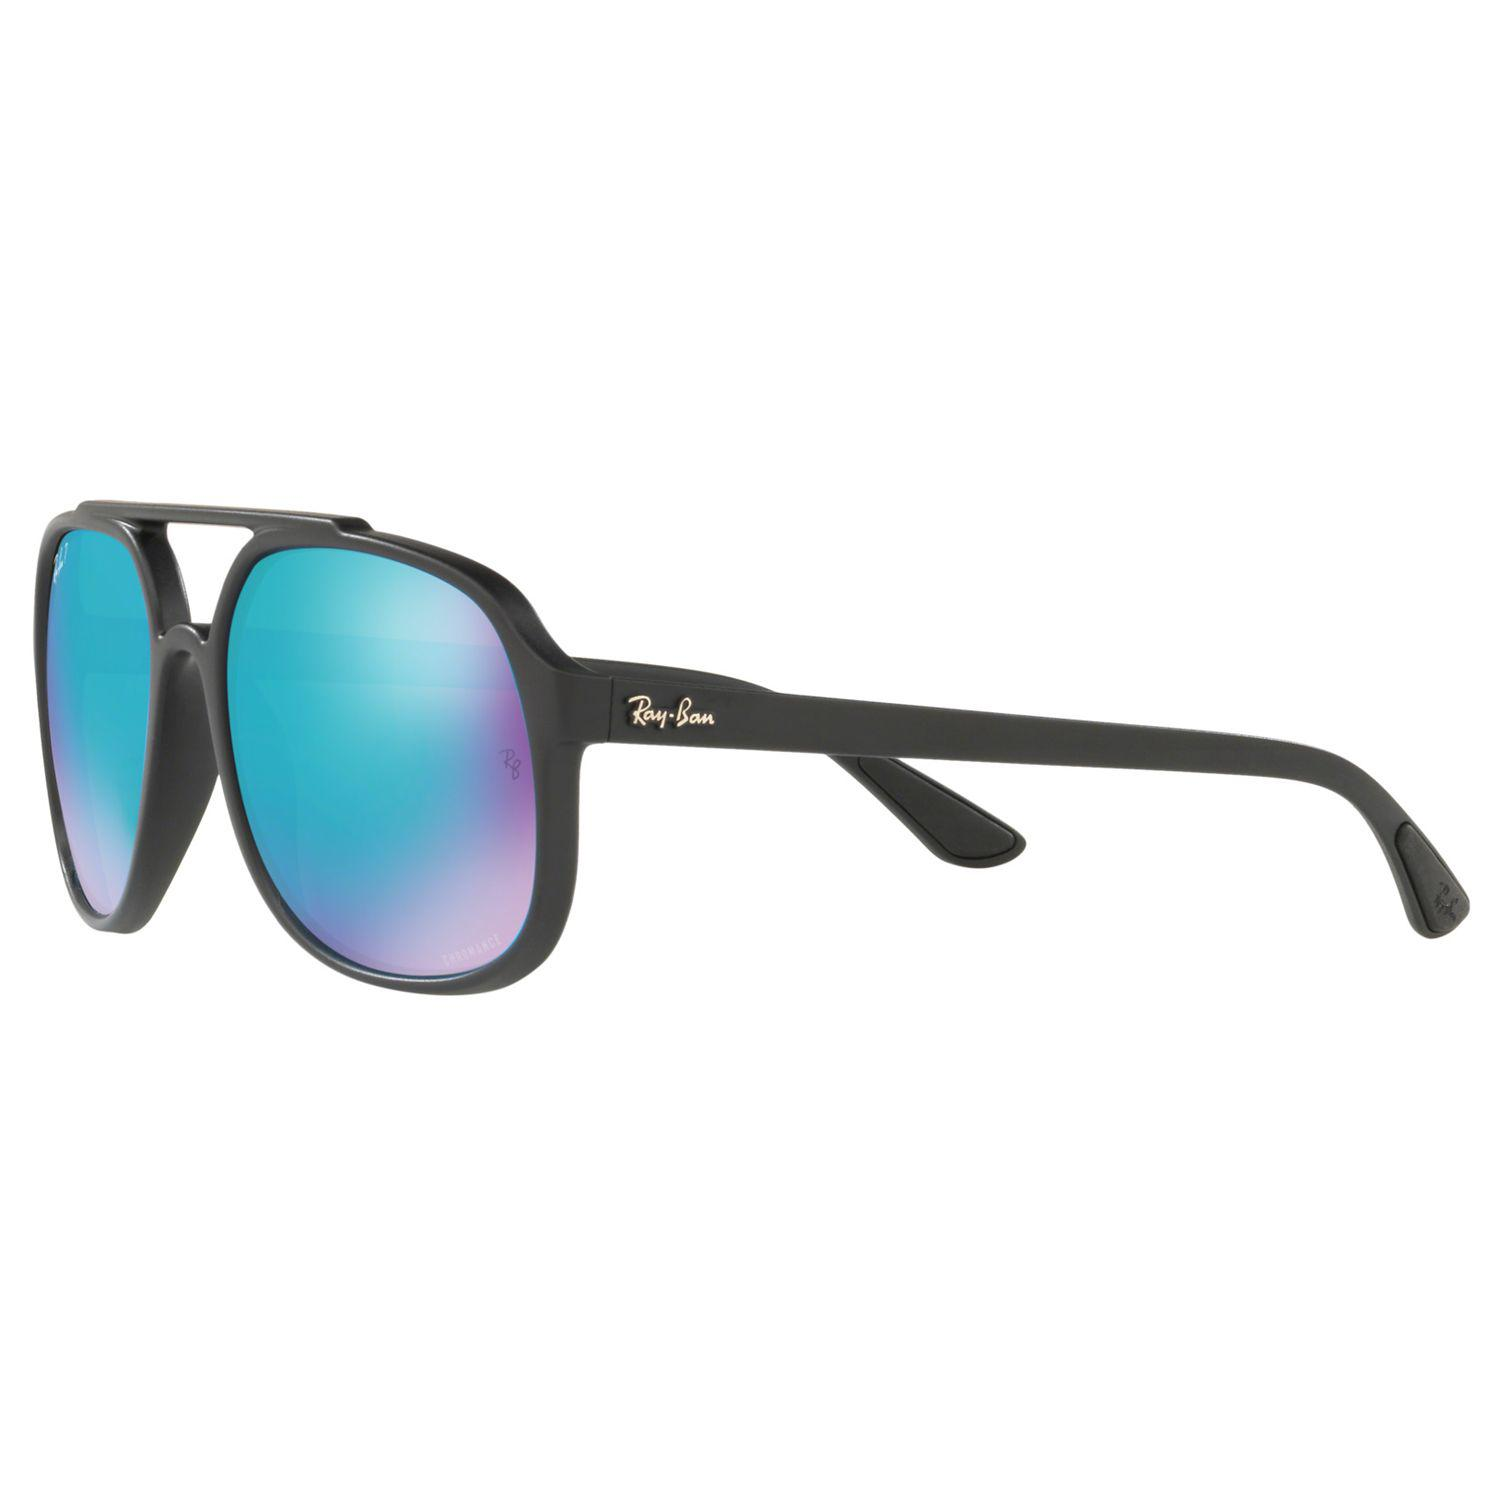 09225d201a26e9 Mens Red Sunglasses ... thoughts on f722d 280b4  Lyst - Ray-Ban ...